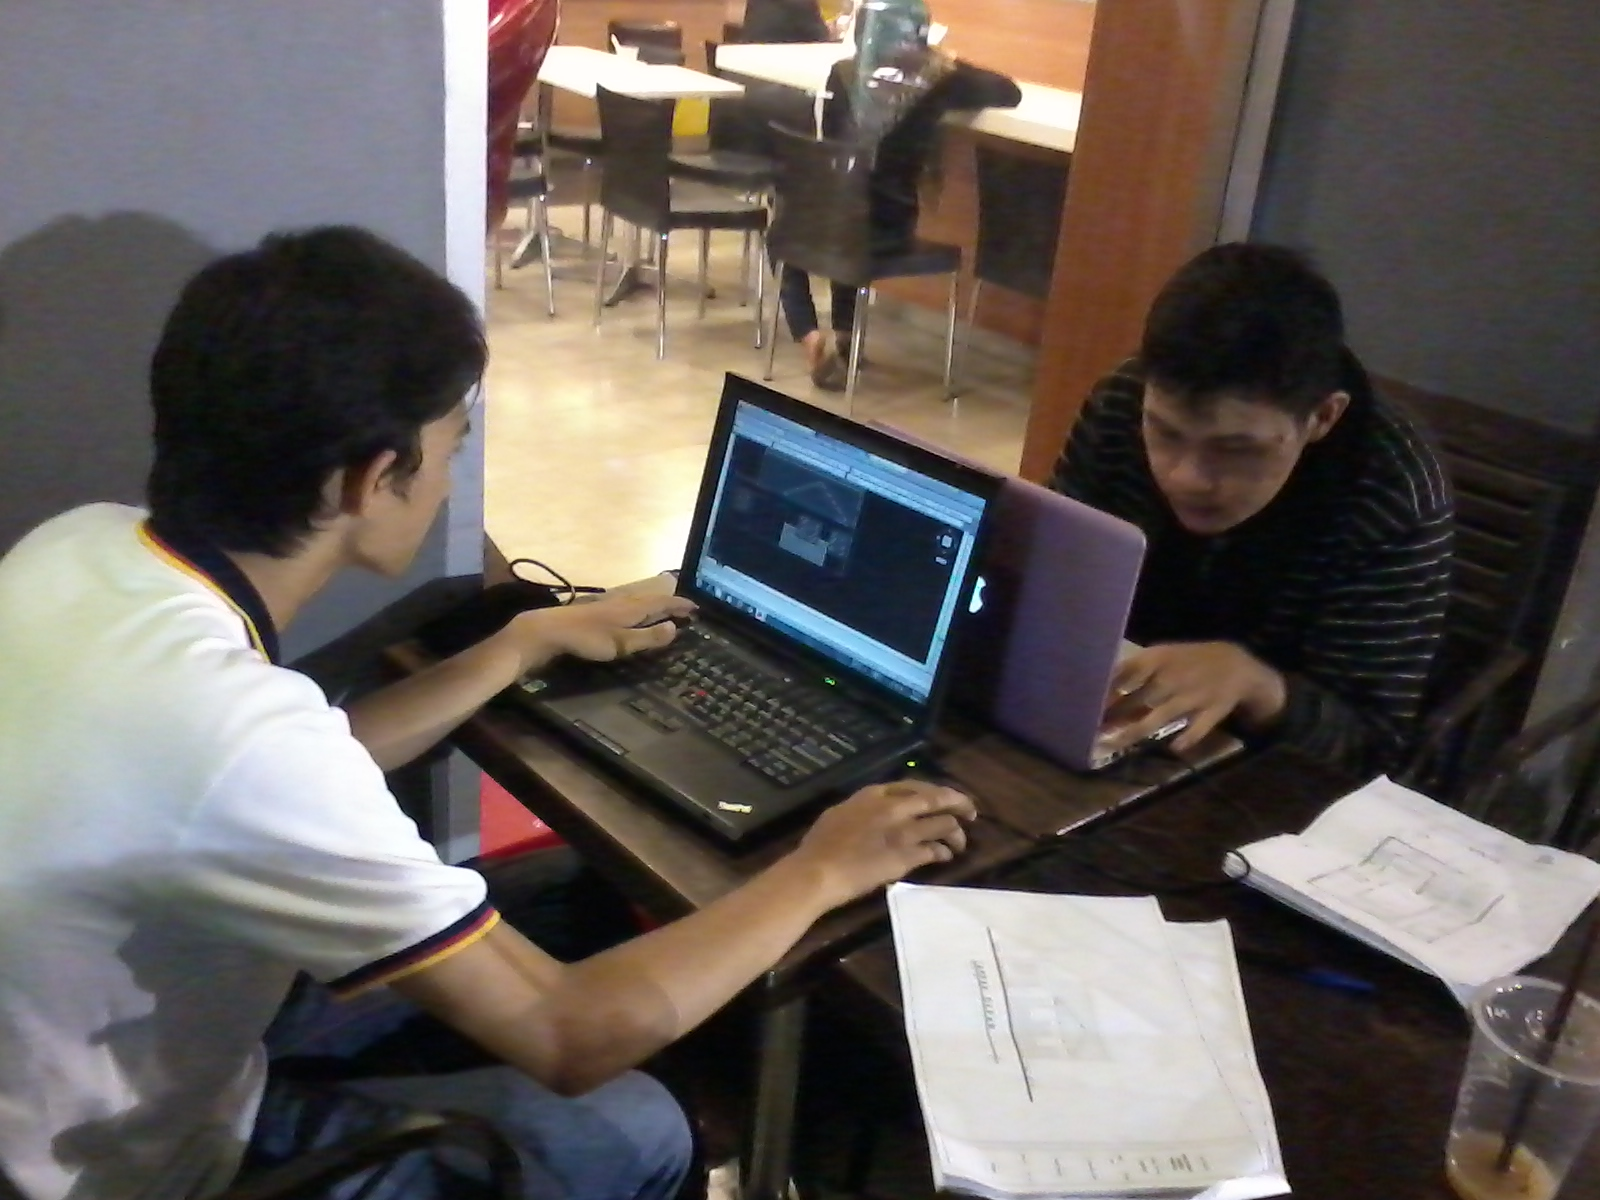 kursus private autocad 2d mahasiswa YAI - MCDonald Arion Plaza